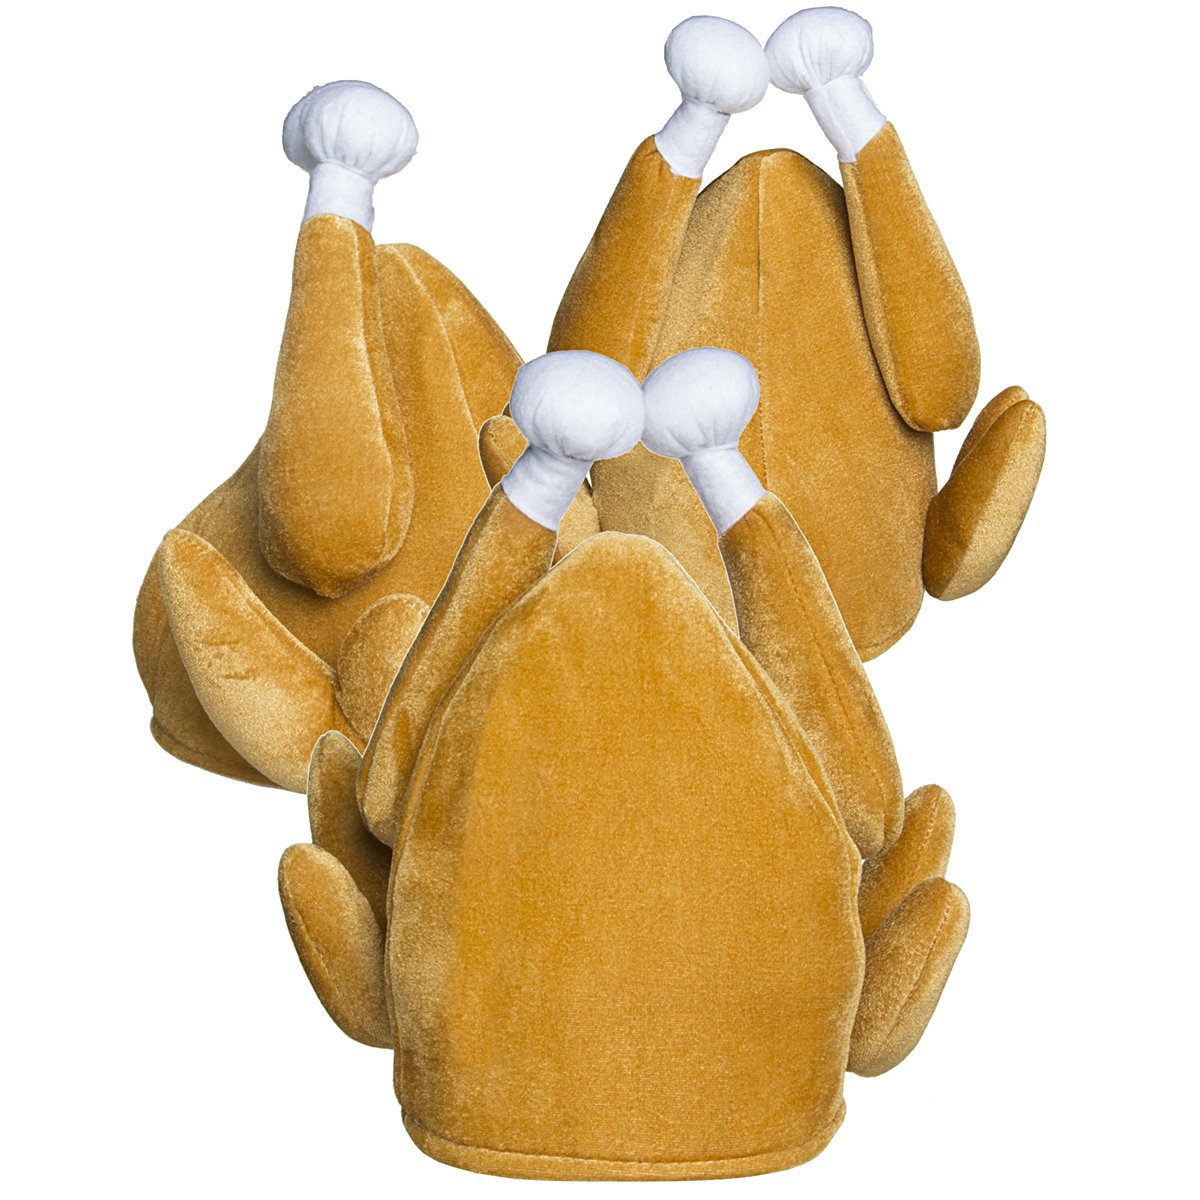 Forum Novelties 3 Turkey Hats Funny Thanksgiving Outfit Adult Halloween Costume Accessory Gift 65538